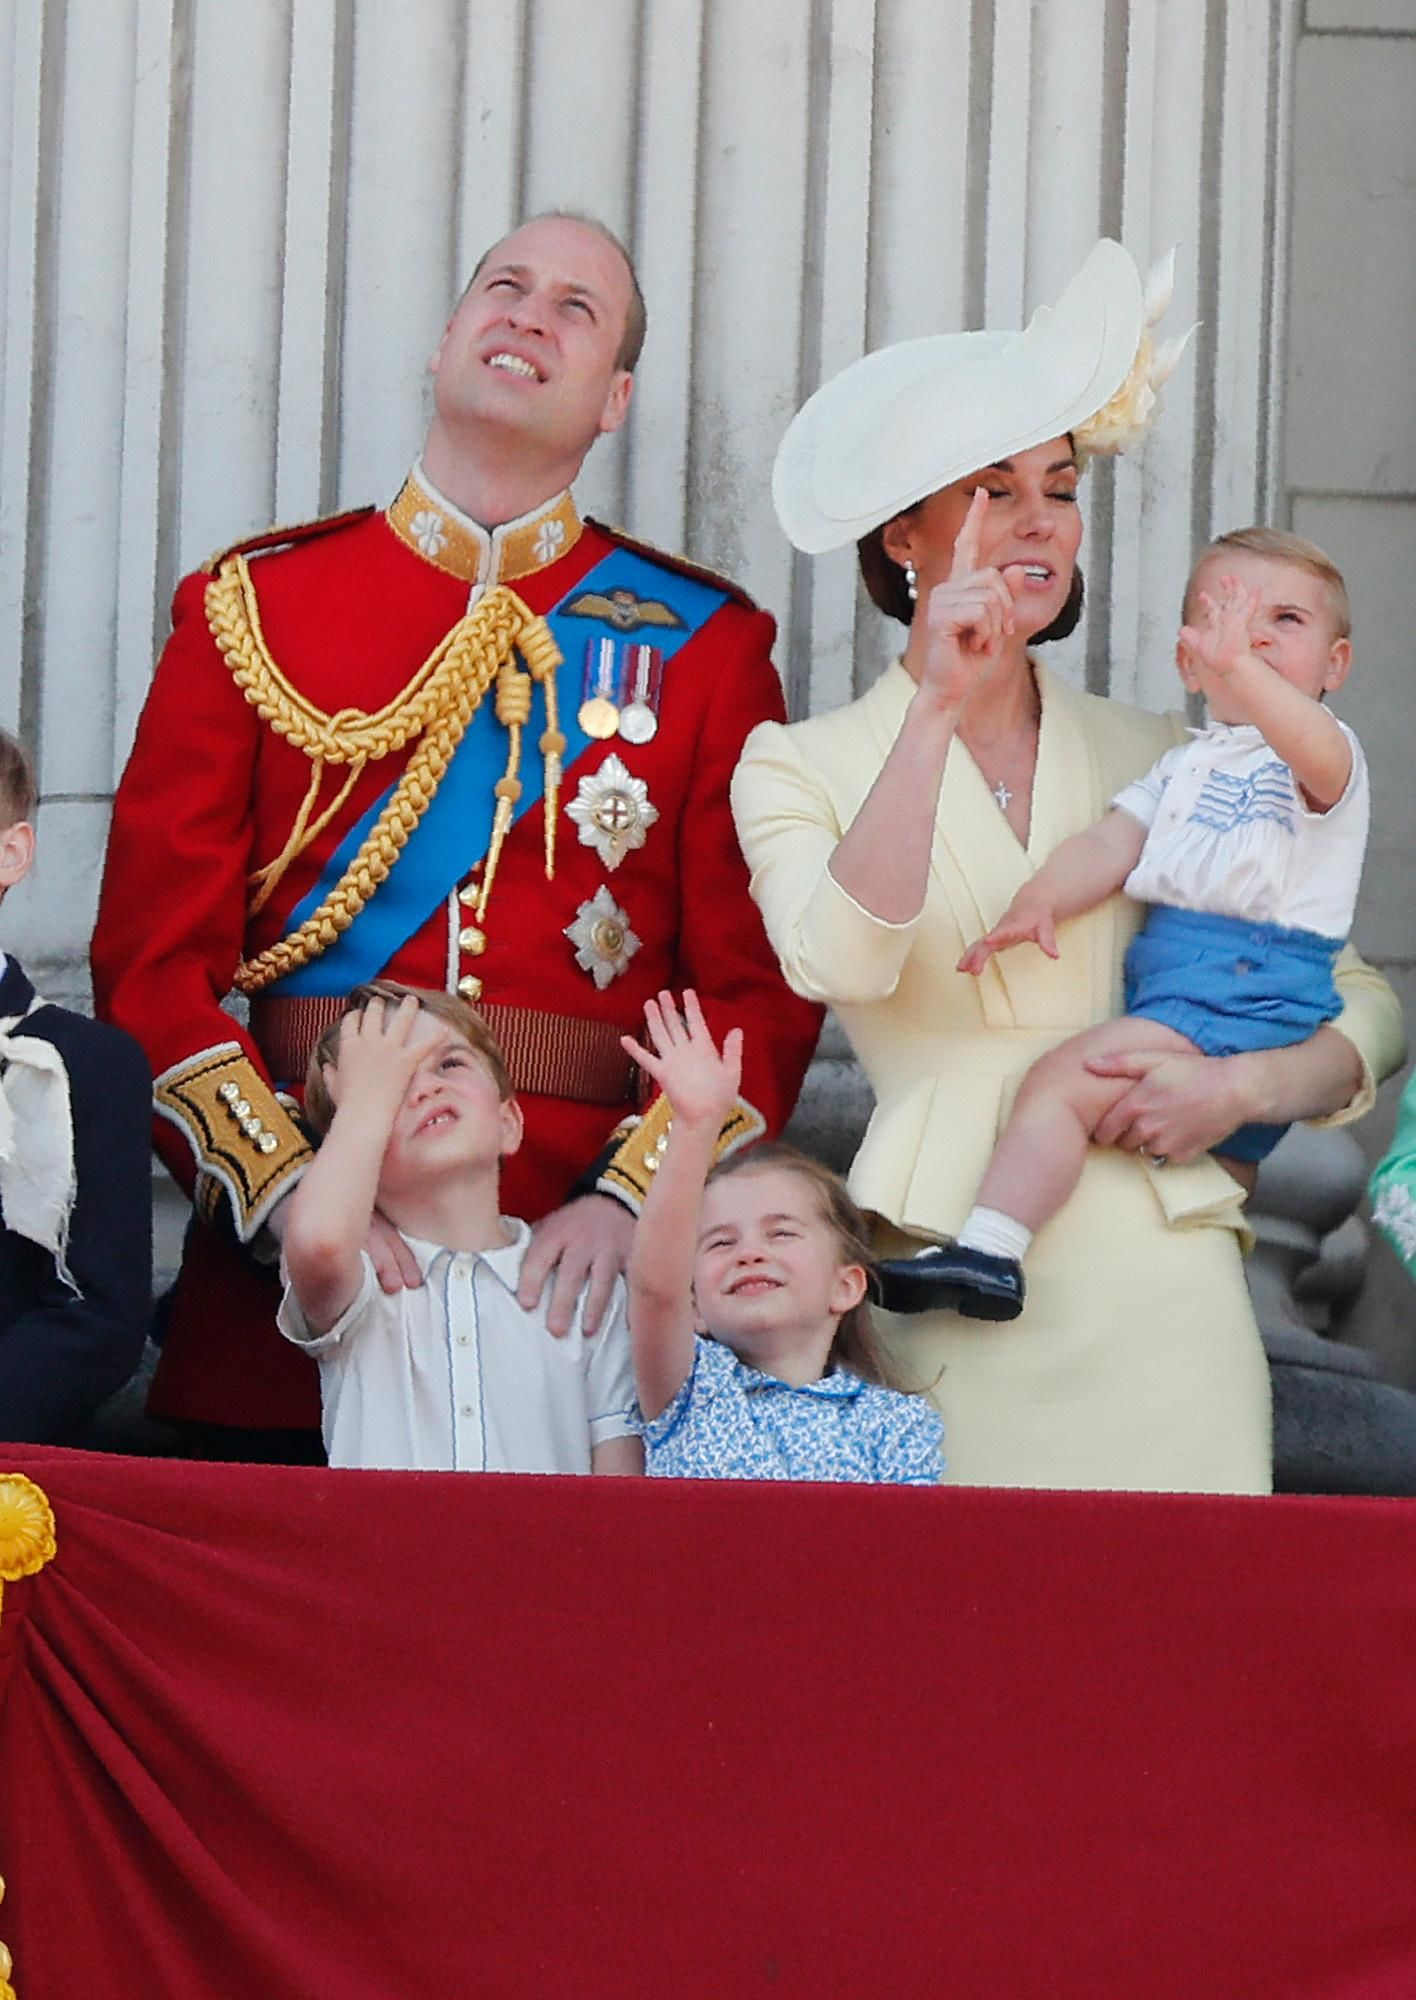 Britain's Prince William and Kate, the Duchess of Cambridge with their Prince George, center left, Princess Charlotte, center, and Prince Louis, top center, attend the annual Trooping the Colour Ceremony in London, Saturday, June 8, 2019. Trooping the Colour is the Queen's Birthday Parade and one of the nation's most impressive and iconic annual events attended by almost every member of the Royal Family. (AP Photo/Frank Augstein)